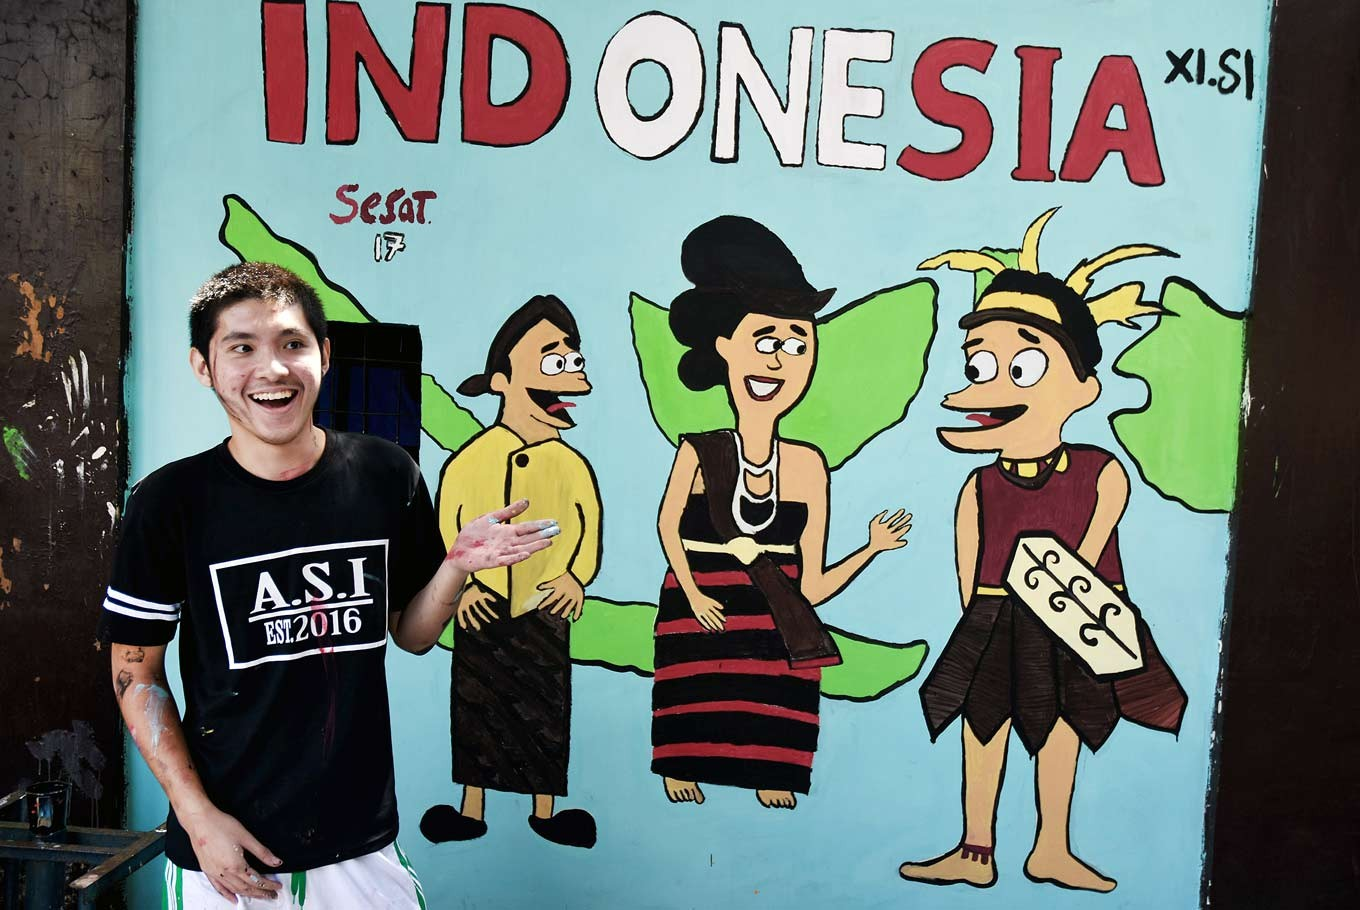 Coast to coast: Keneth, an 11th grader, poses in front of a mural, which depicts the three main parts of the Indonesian archipelago - the western, central and eastern.